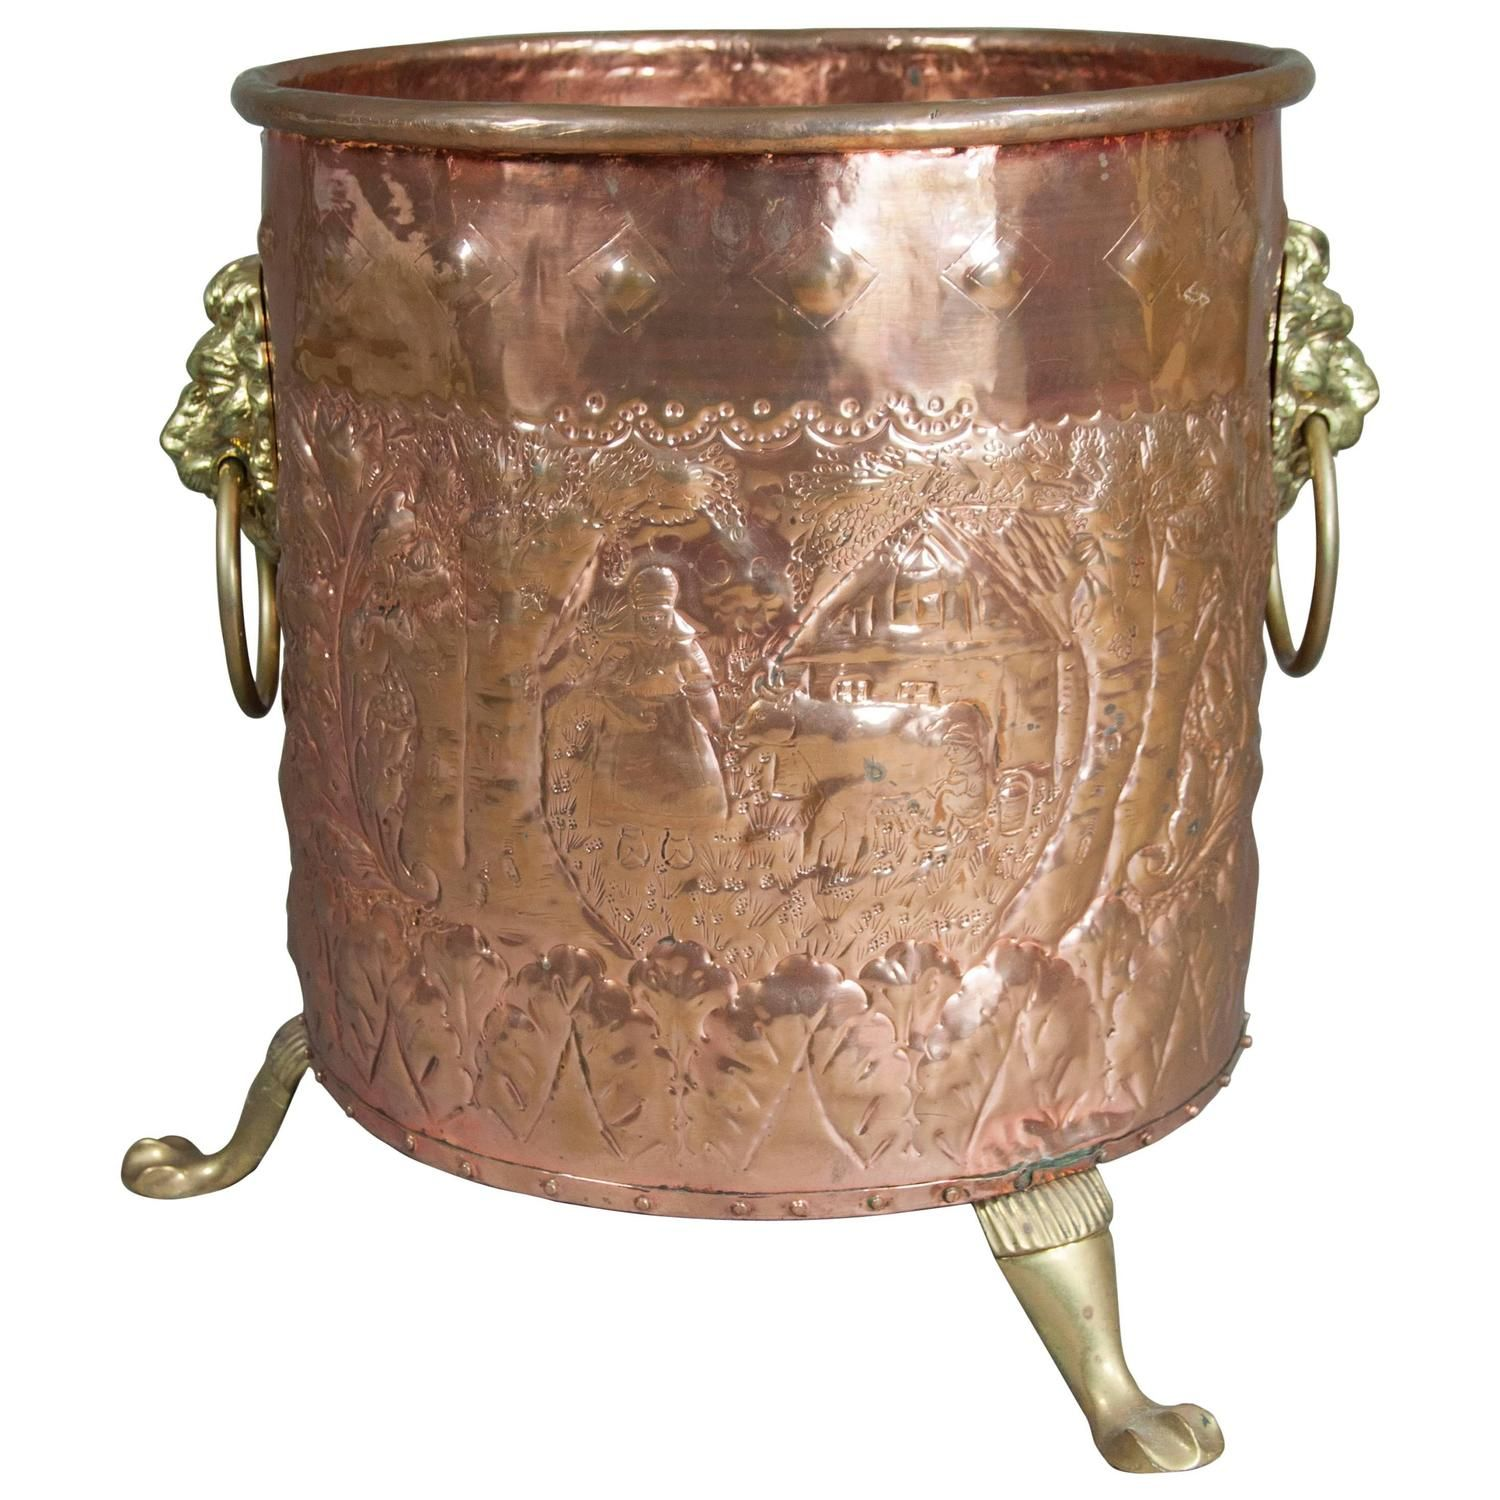 European Copper And Brass Fireplace Pail | From a unique collection of antique and modern planters and jardinieres at https://www.1stdibs.com/furniture/building-garden/planters-jardinieres/